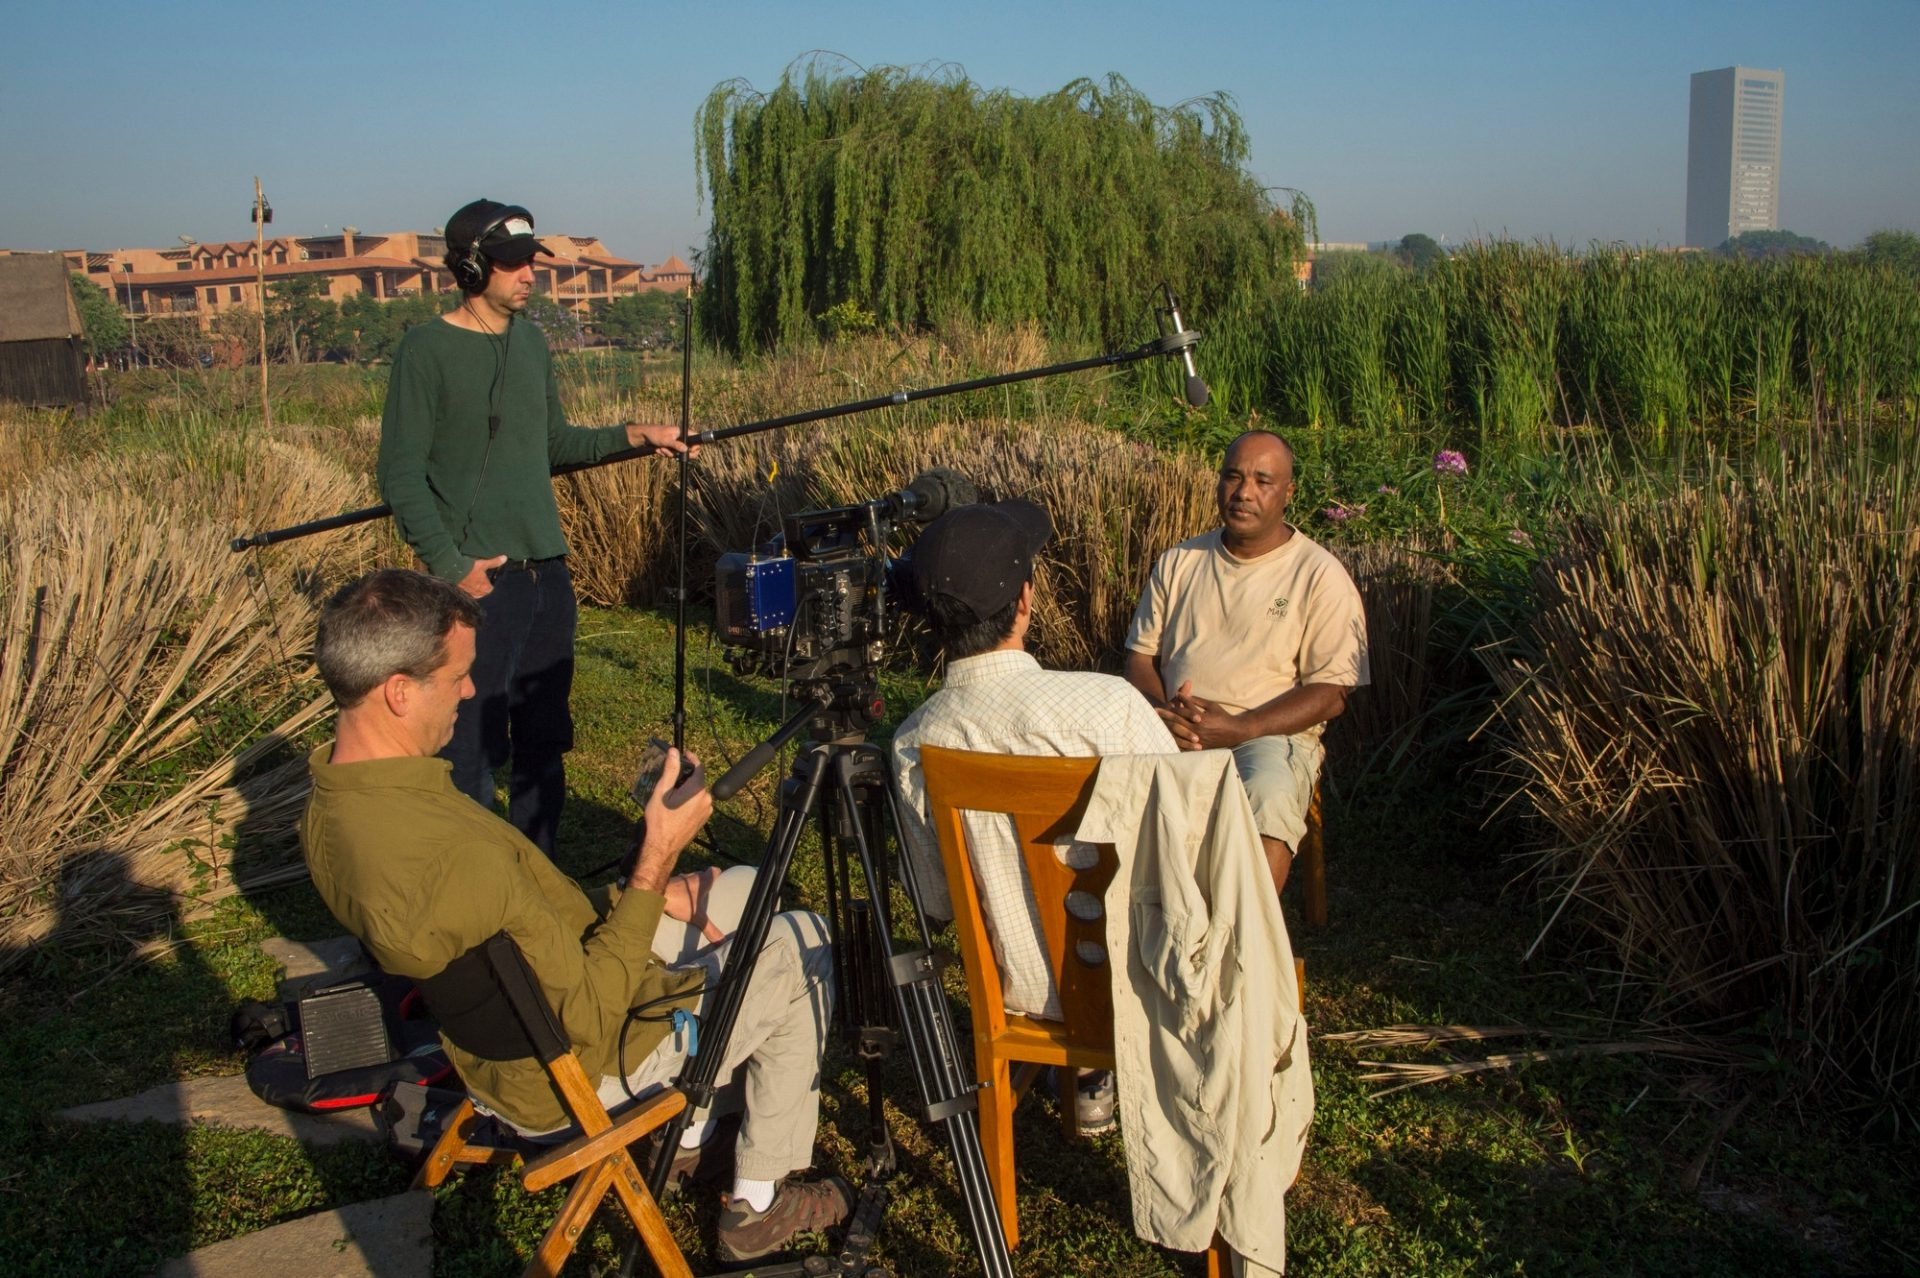 Photo: A television crew interviews Lily Rene de Roland Arison, who rediscovered the once thought extinct Madagascar pochard.